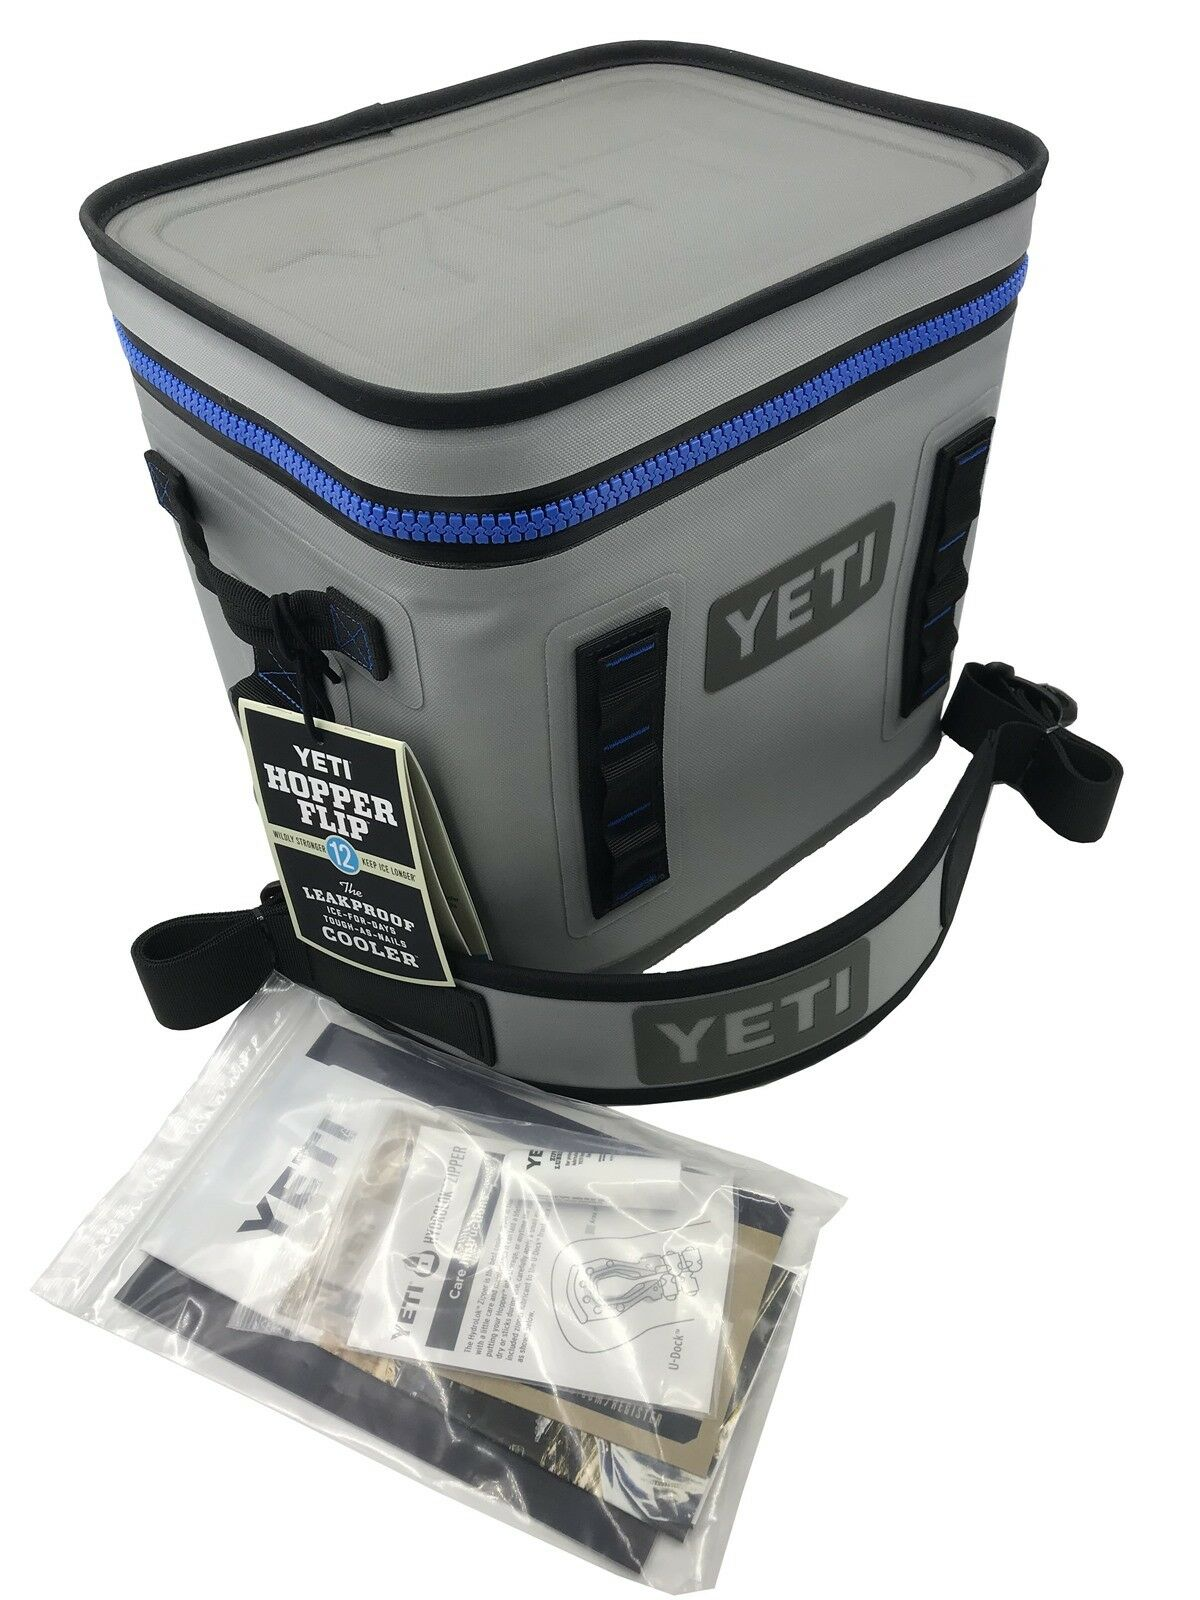 Купить Yeti Cooler Original Hopper Flip 12 Gray & Blue Leakproof